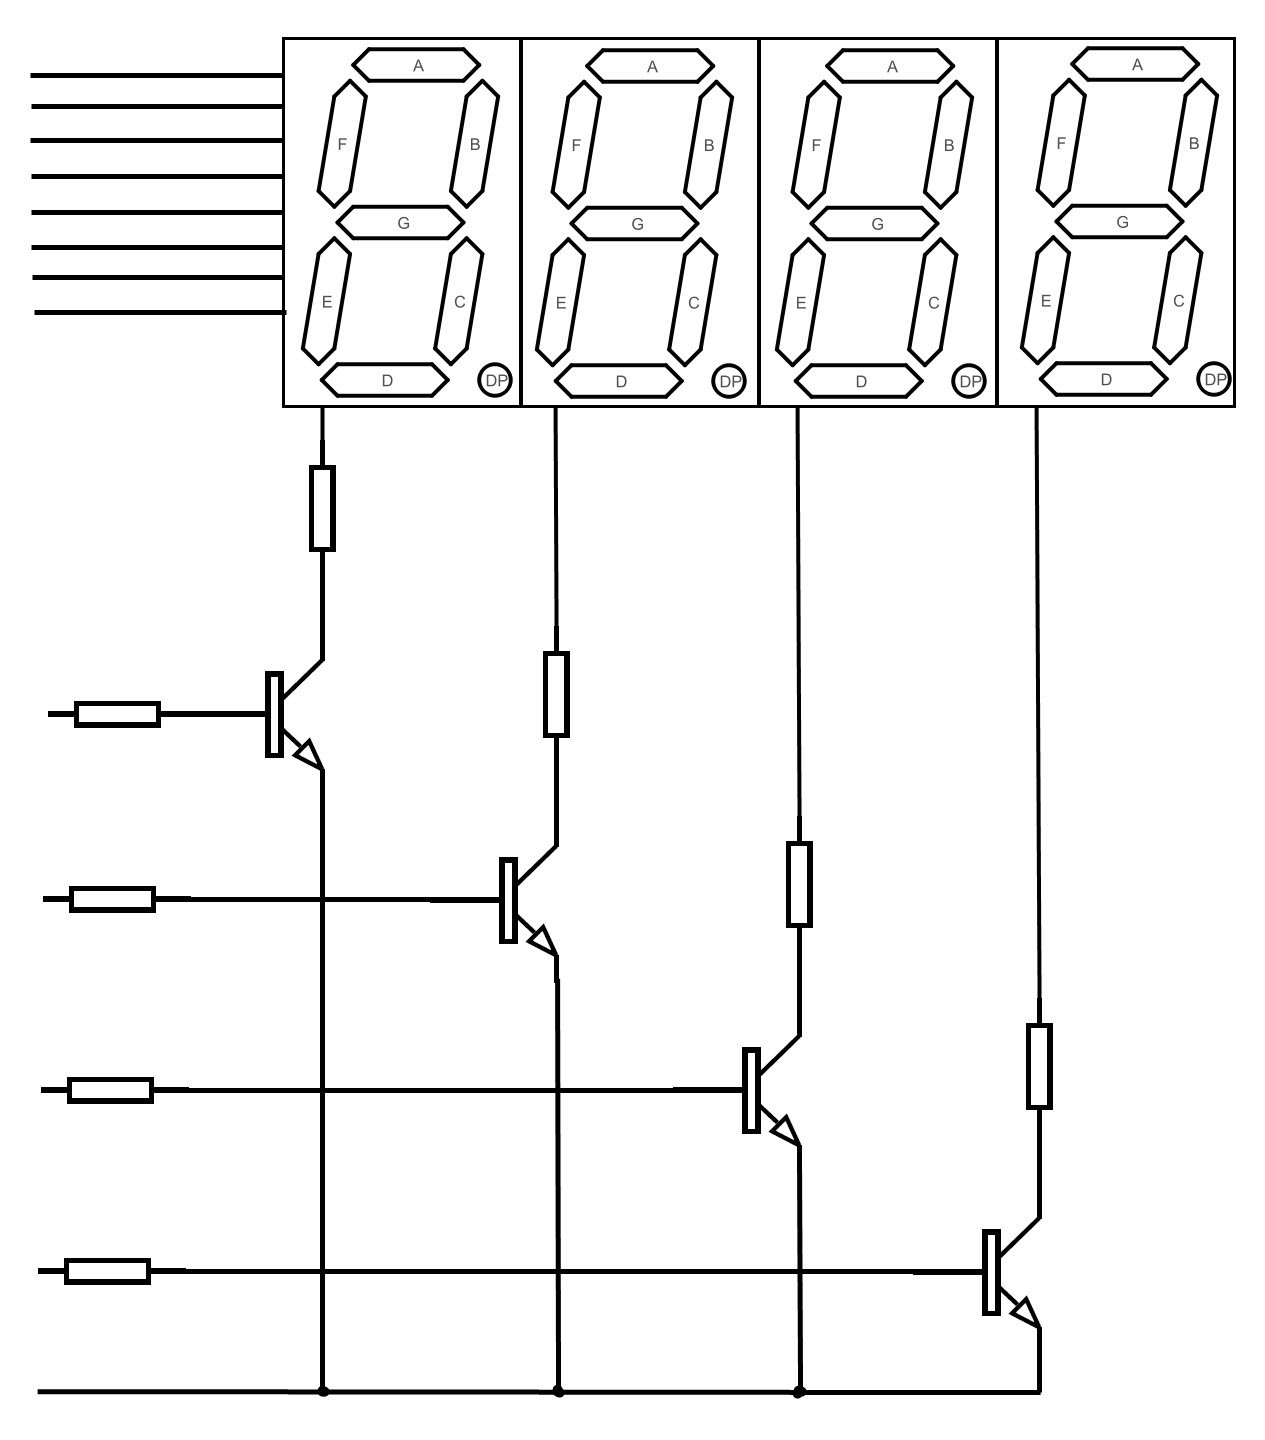 circuit diagram for the 7segment display circuit